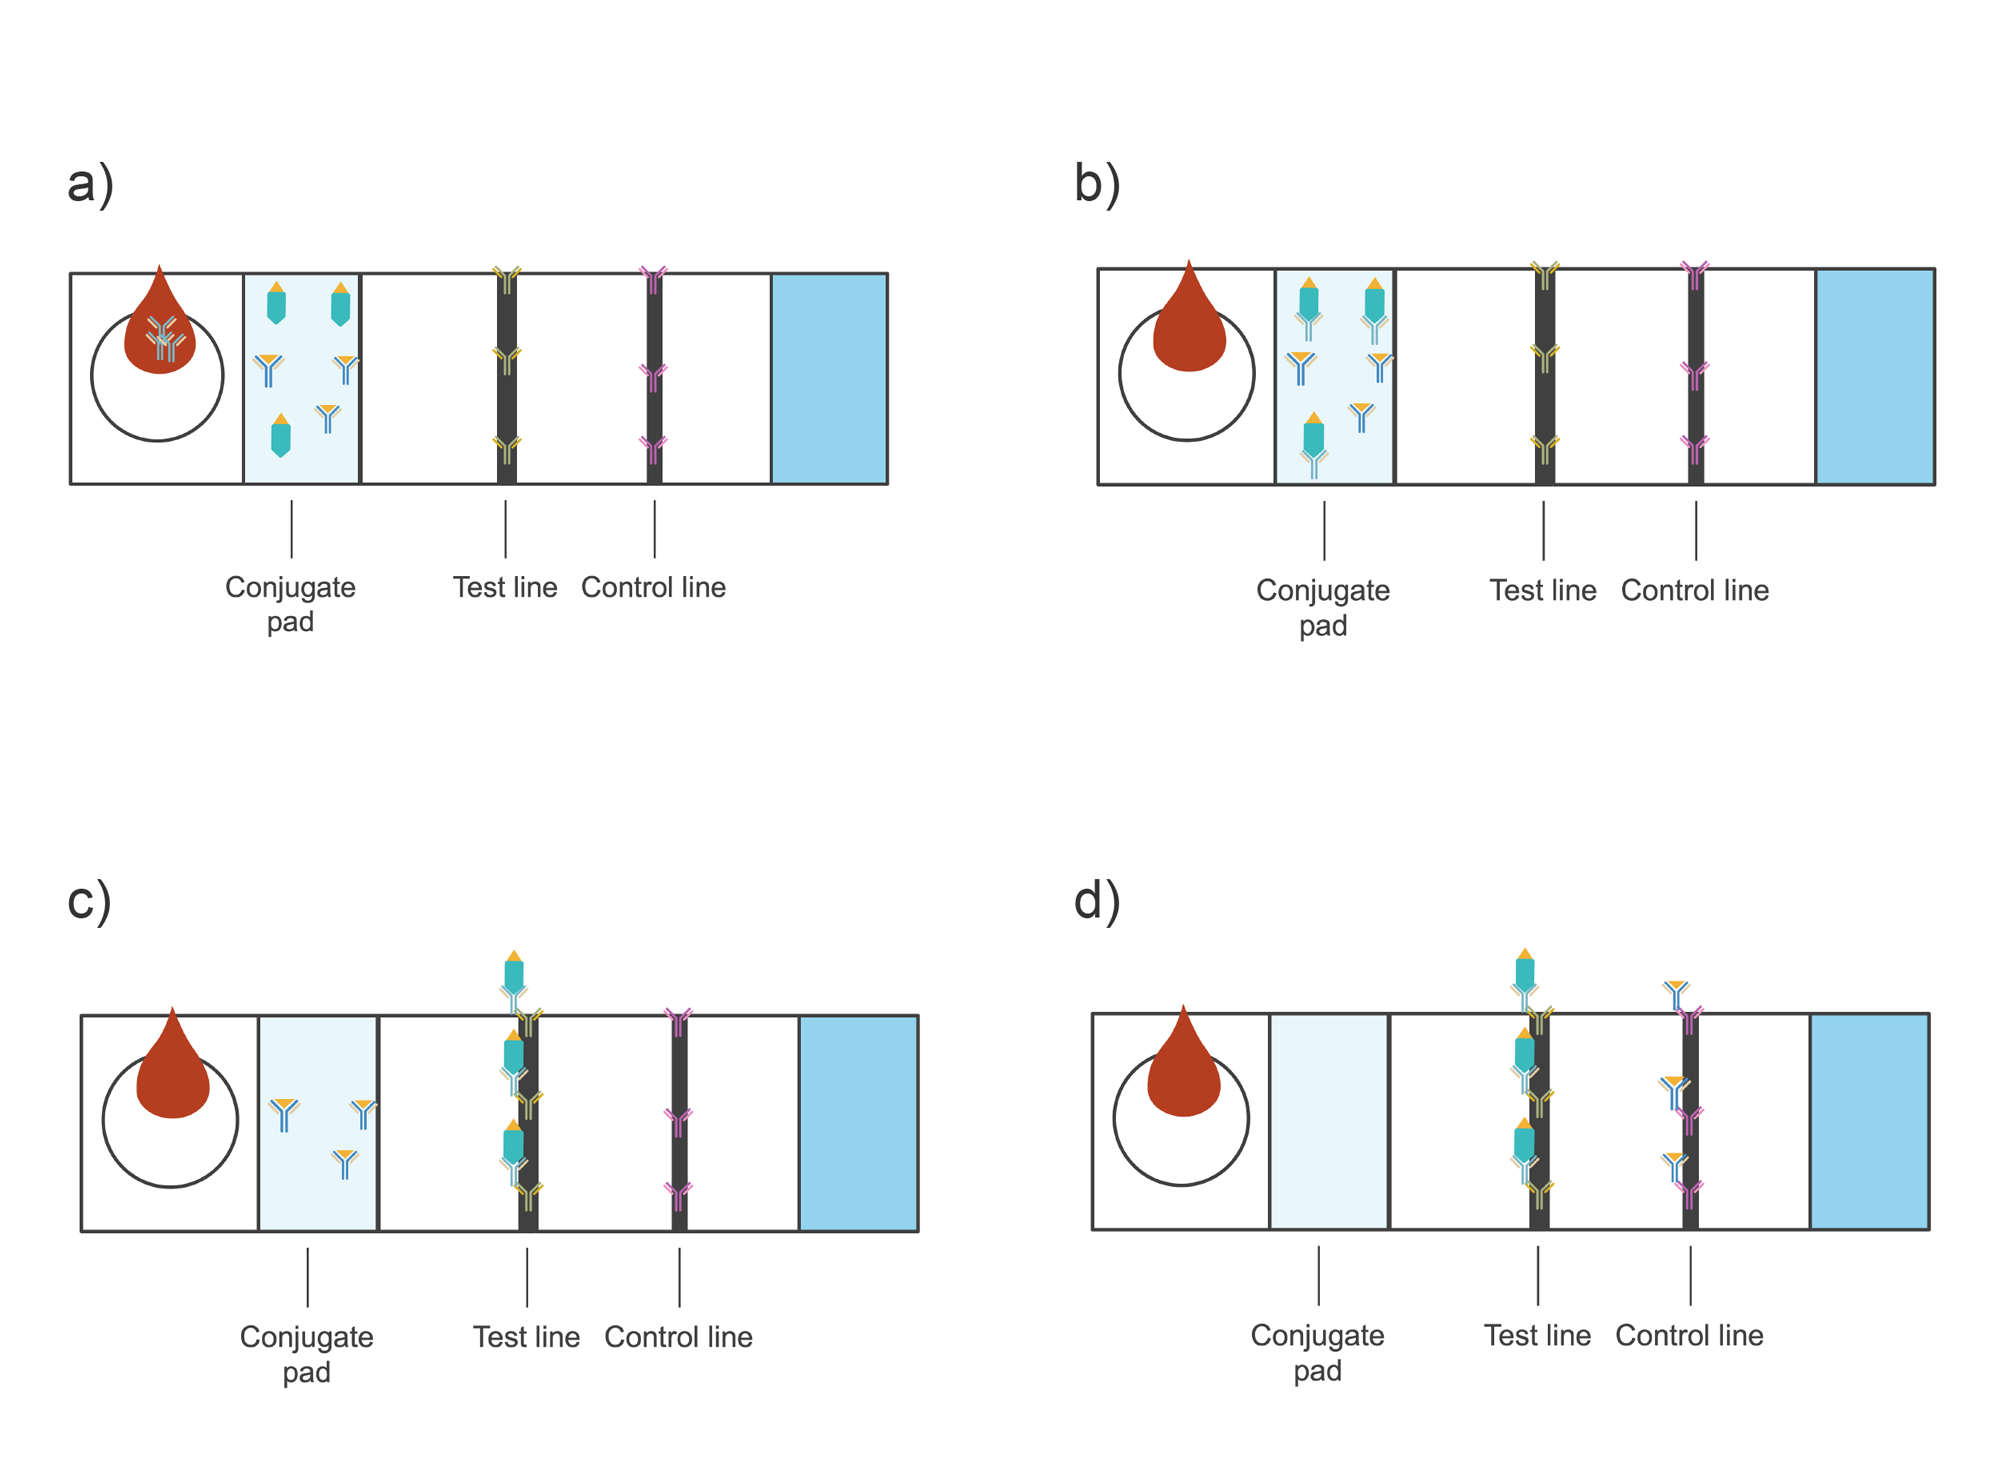 Paper strip of LFIA divided into sections—conjugate pad, test line, control line, absorption pad. Illustration.